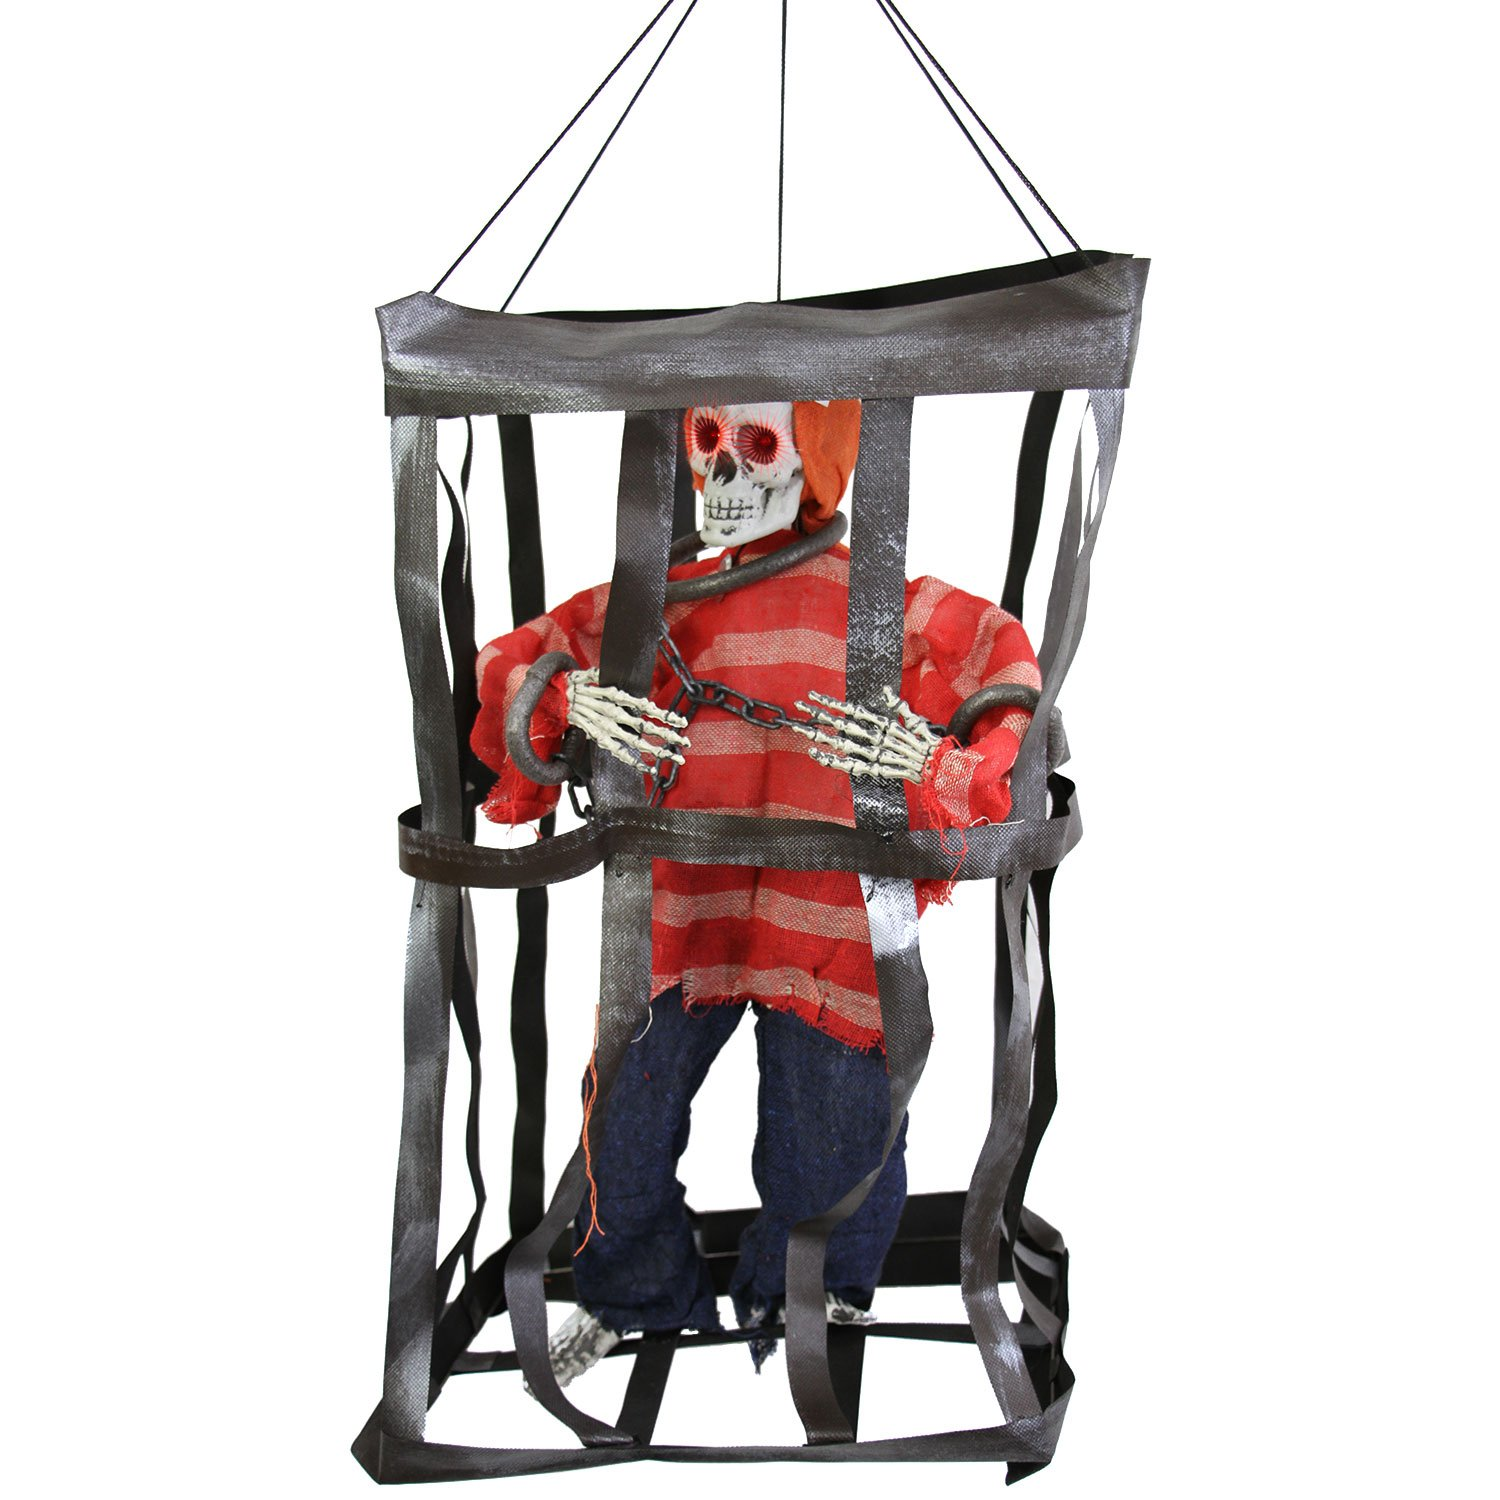 Halloween Haunters Animated Hanging Caged Skeleton Pirate Prisoner in Shackles & Chains Prop Decoration - Laughs, Moving Arms, Flashing Eyes, Jail - Battery Operated